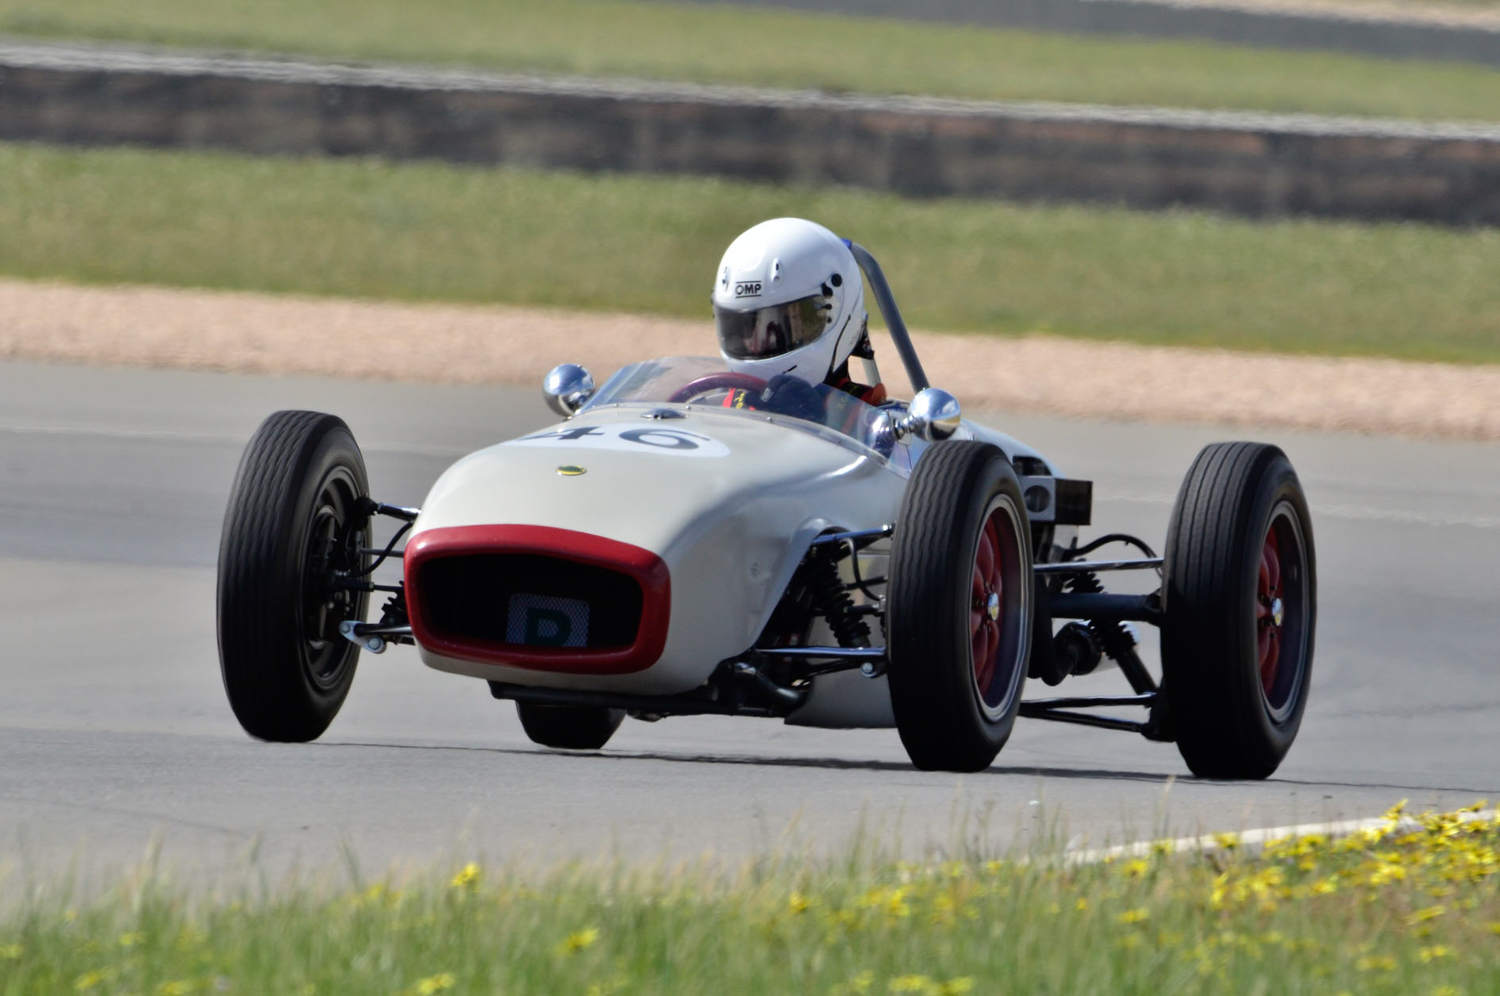 Rod Butcher's Lotus 18, running in the Vintage category.